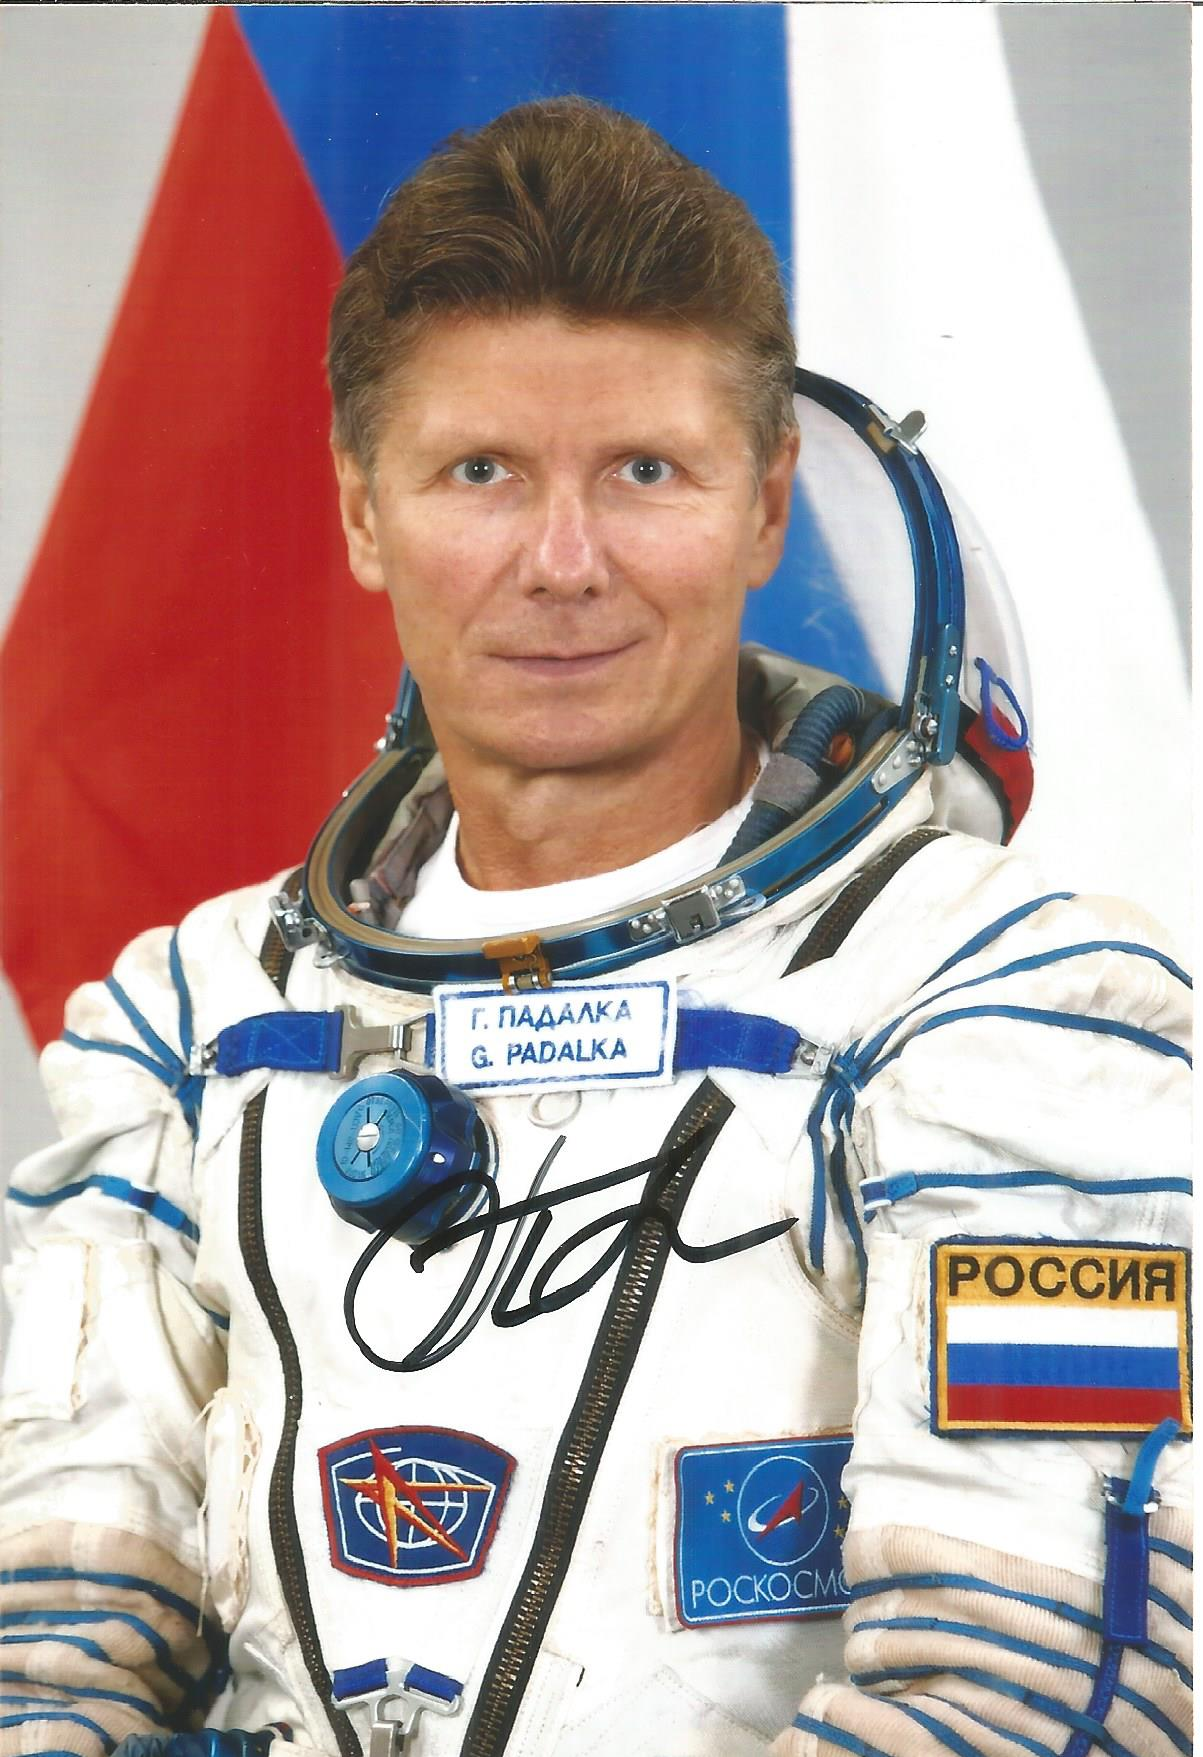 Gennady Padalka, Russian Soyuz Cosmonaut signed 6 x 4 colour photo. Padalka is a Russian Air Force